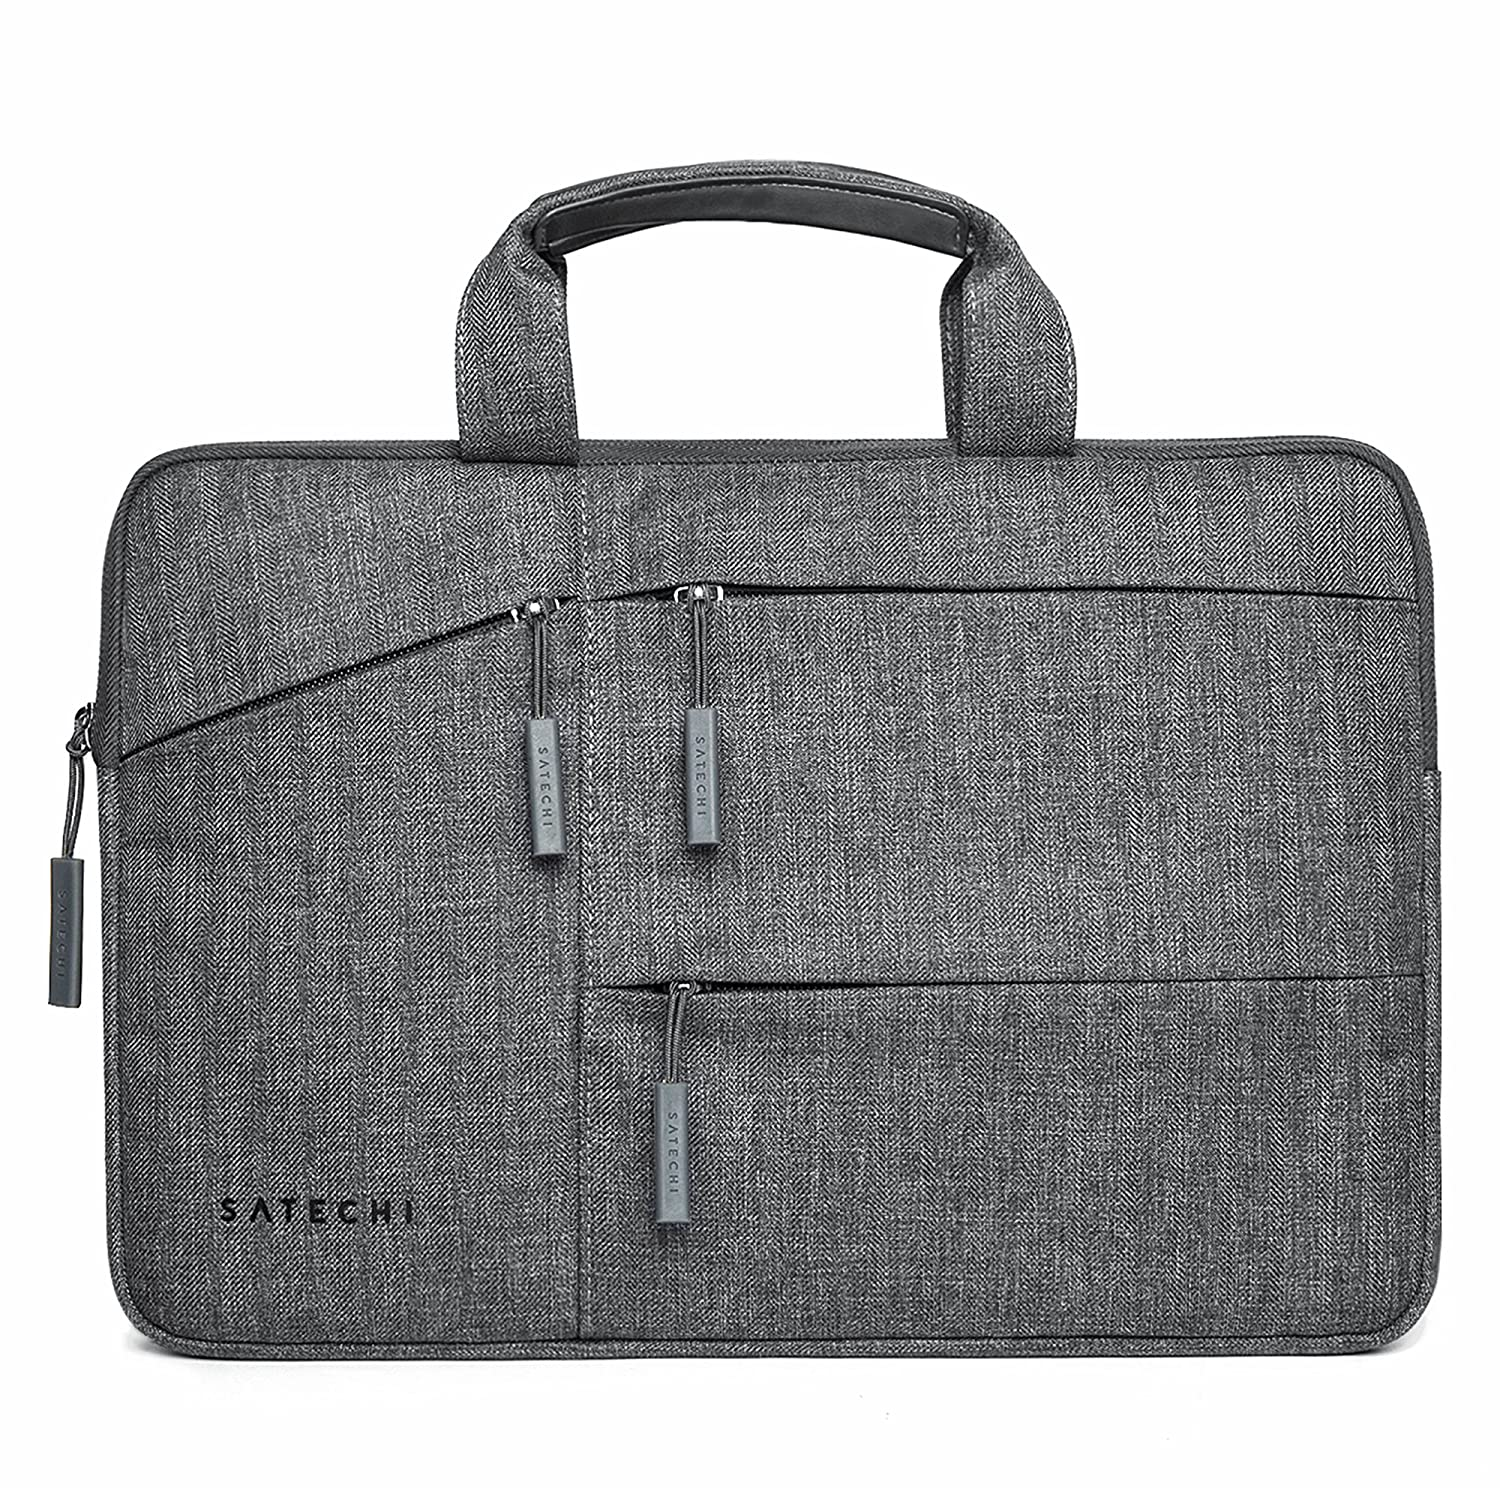 """Satechi Water-Resistant Laptop Bag Carrying Case with Pockets - Compatible with MacBook Pro 15"""", HP Spectre x360 15"""", Dell XPS 15"""" and More (15 Inch)"""